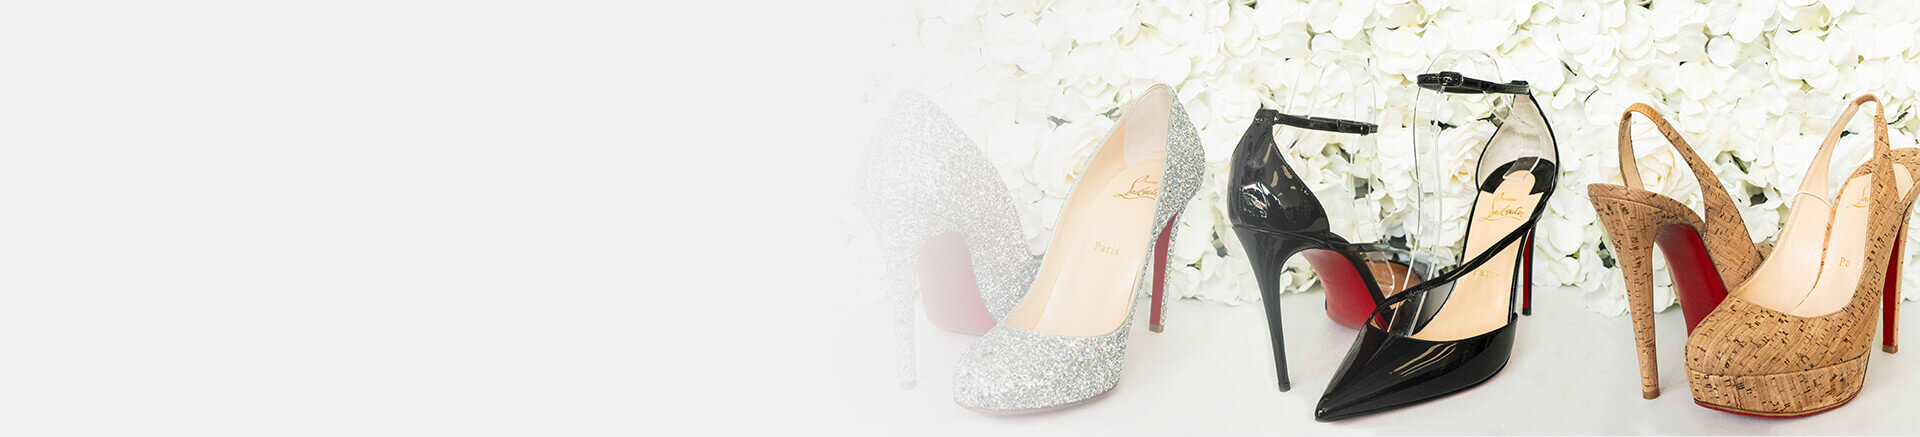 Sell Used Christian Louboutin Shoes,San